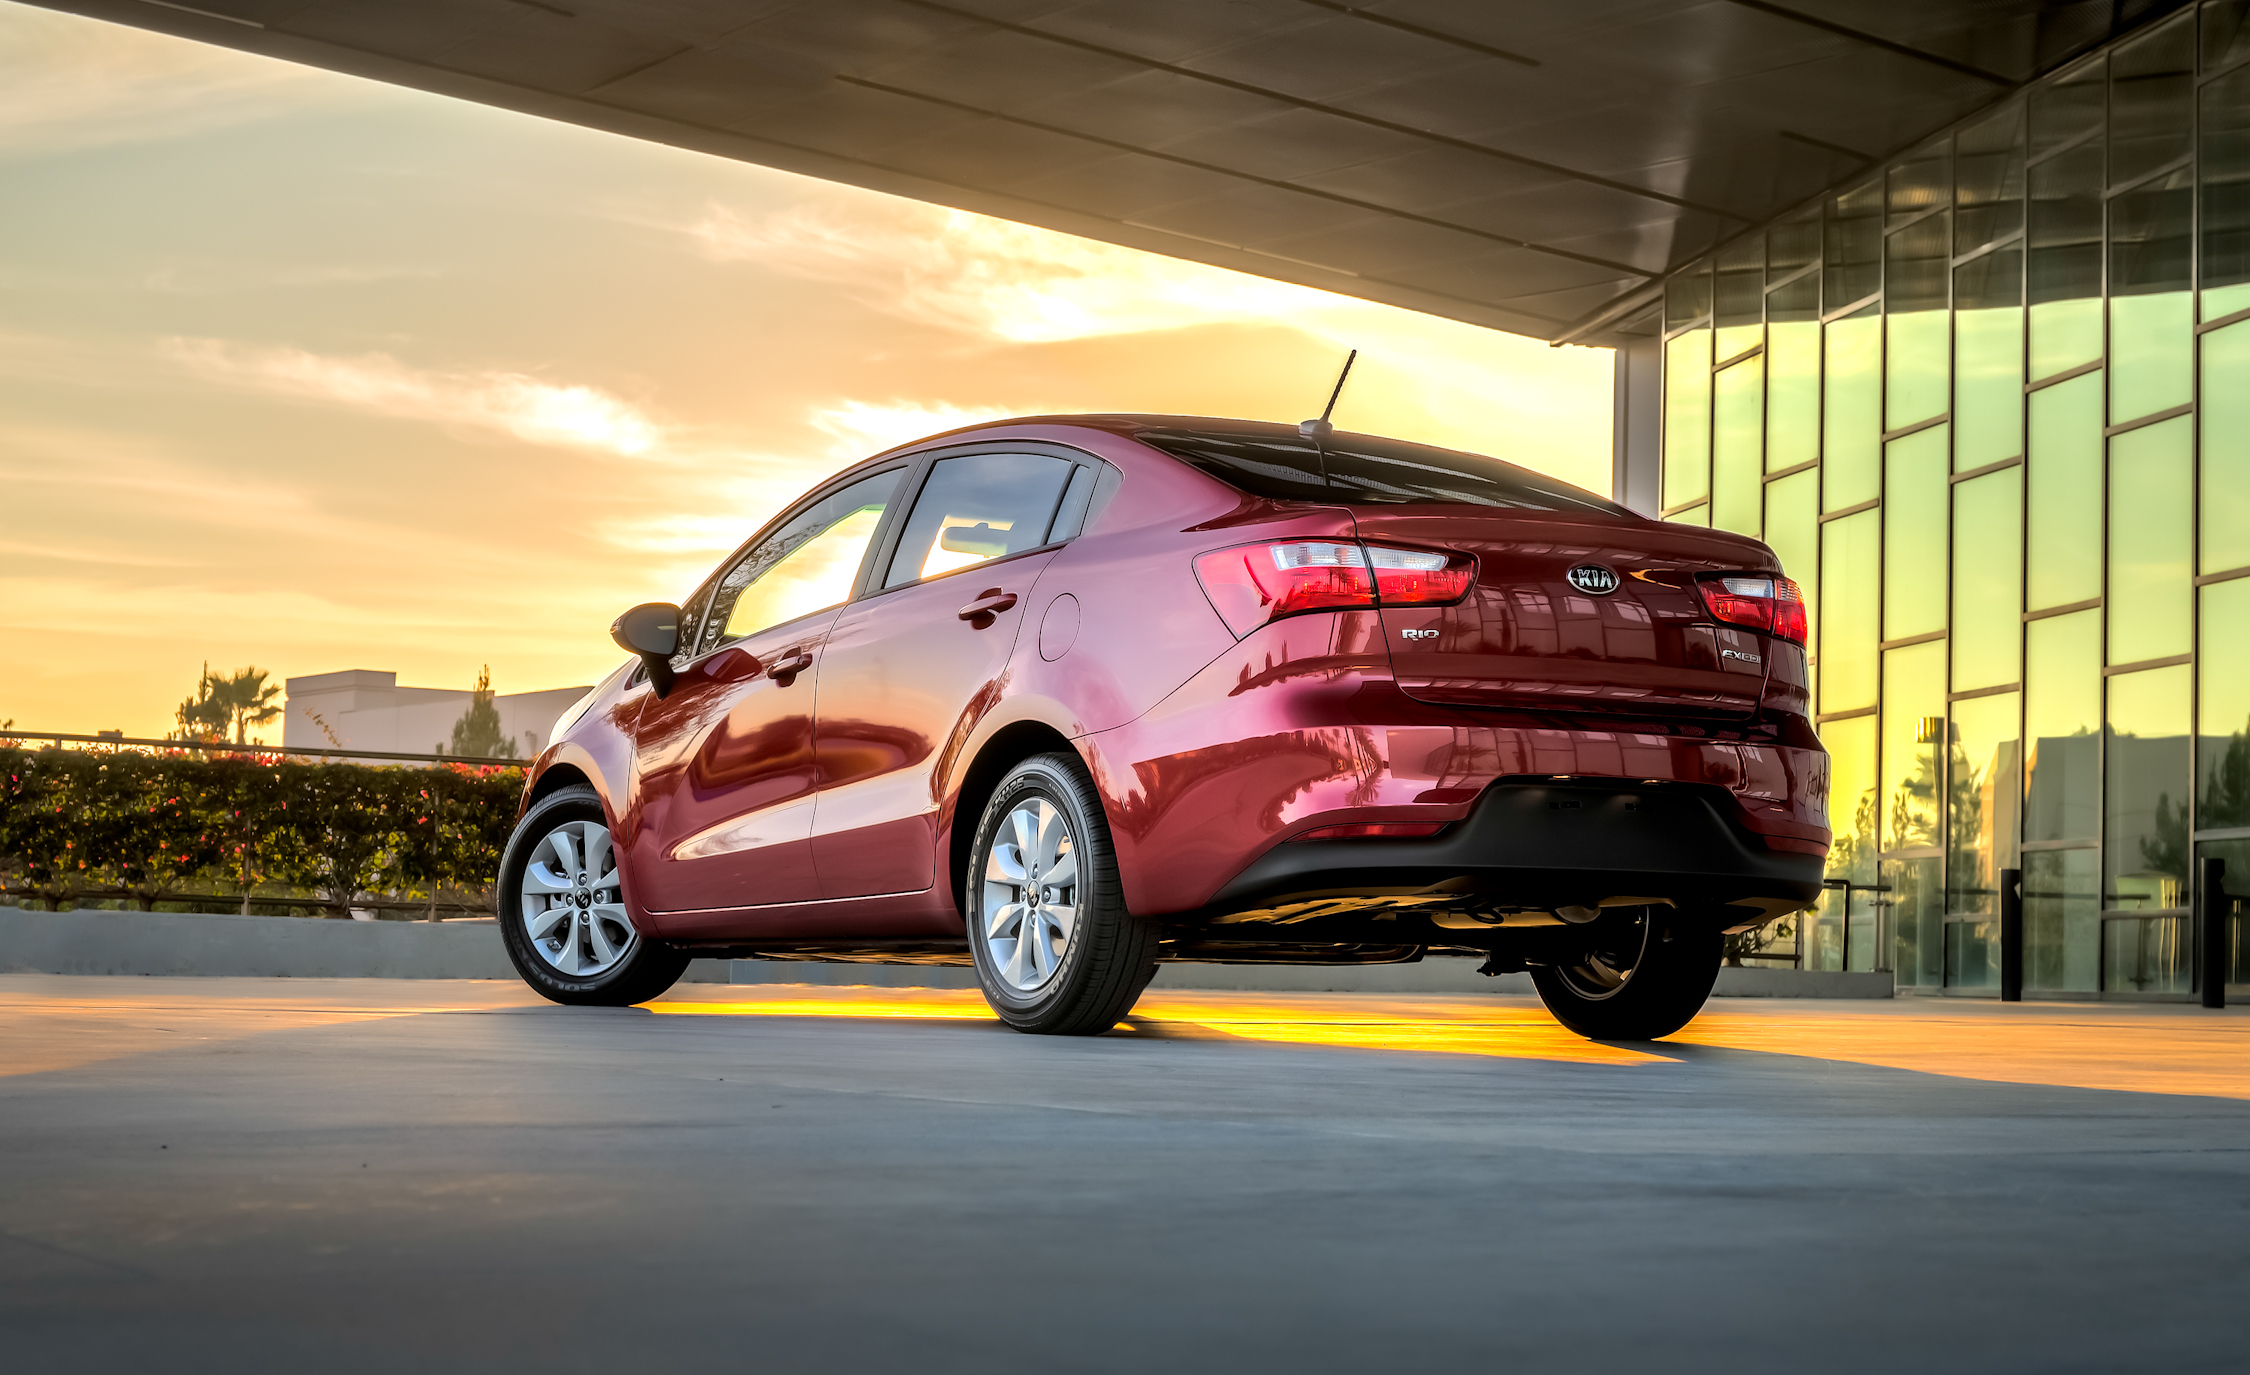 2016 Kia Rio Sedan (View 16 of 19)